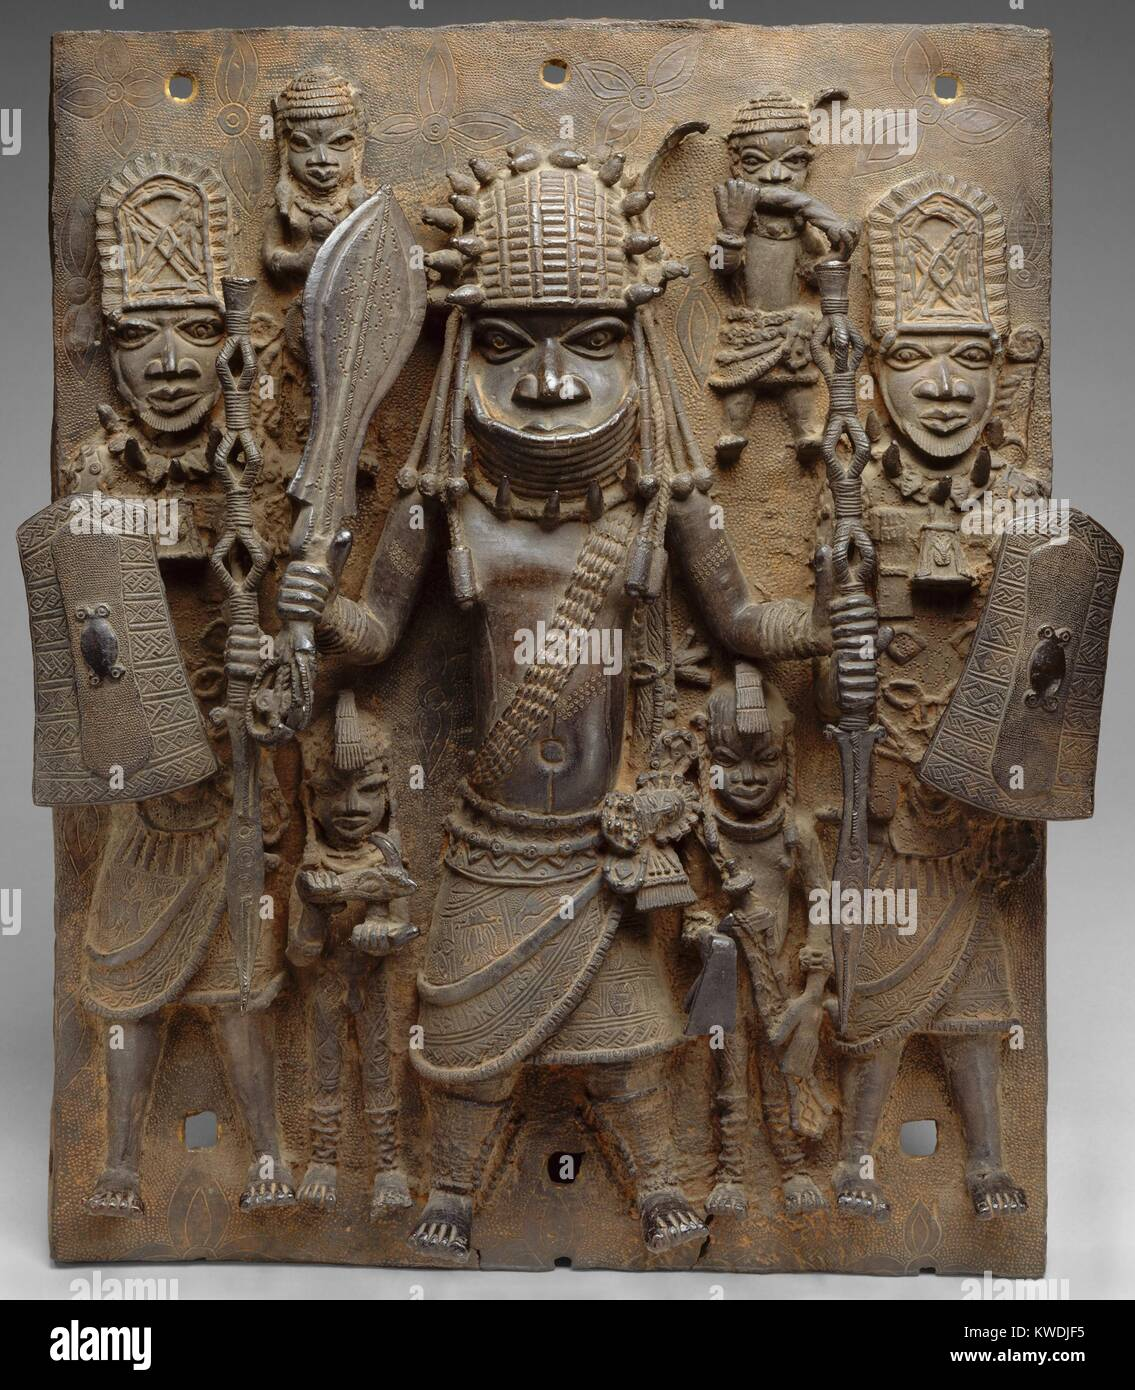 PLAQUE WARRIOR AND ATTENDANTS, 16th-17th c., Nigeria, Africa, Court of Benin, sculpture, cast brass. This work hung - Stock Image